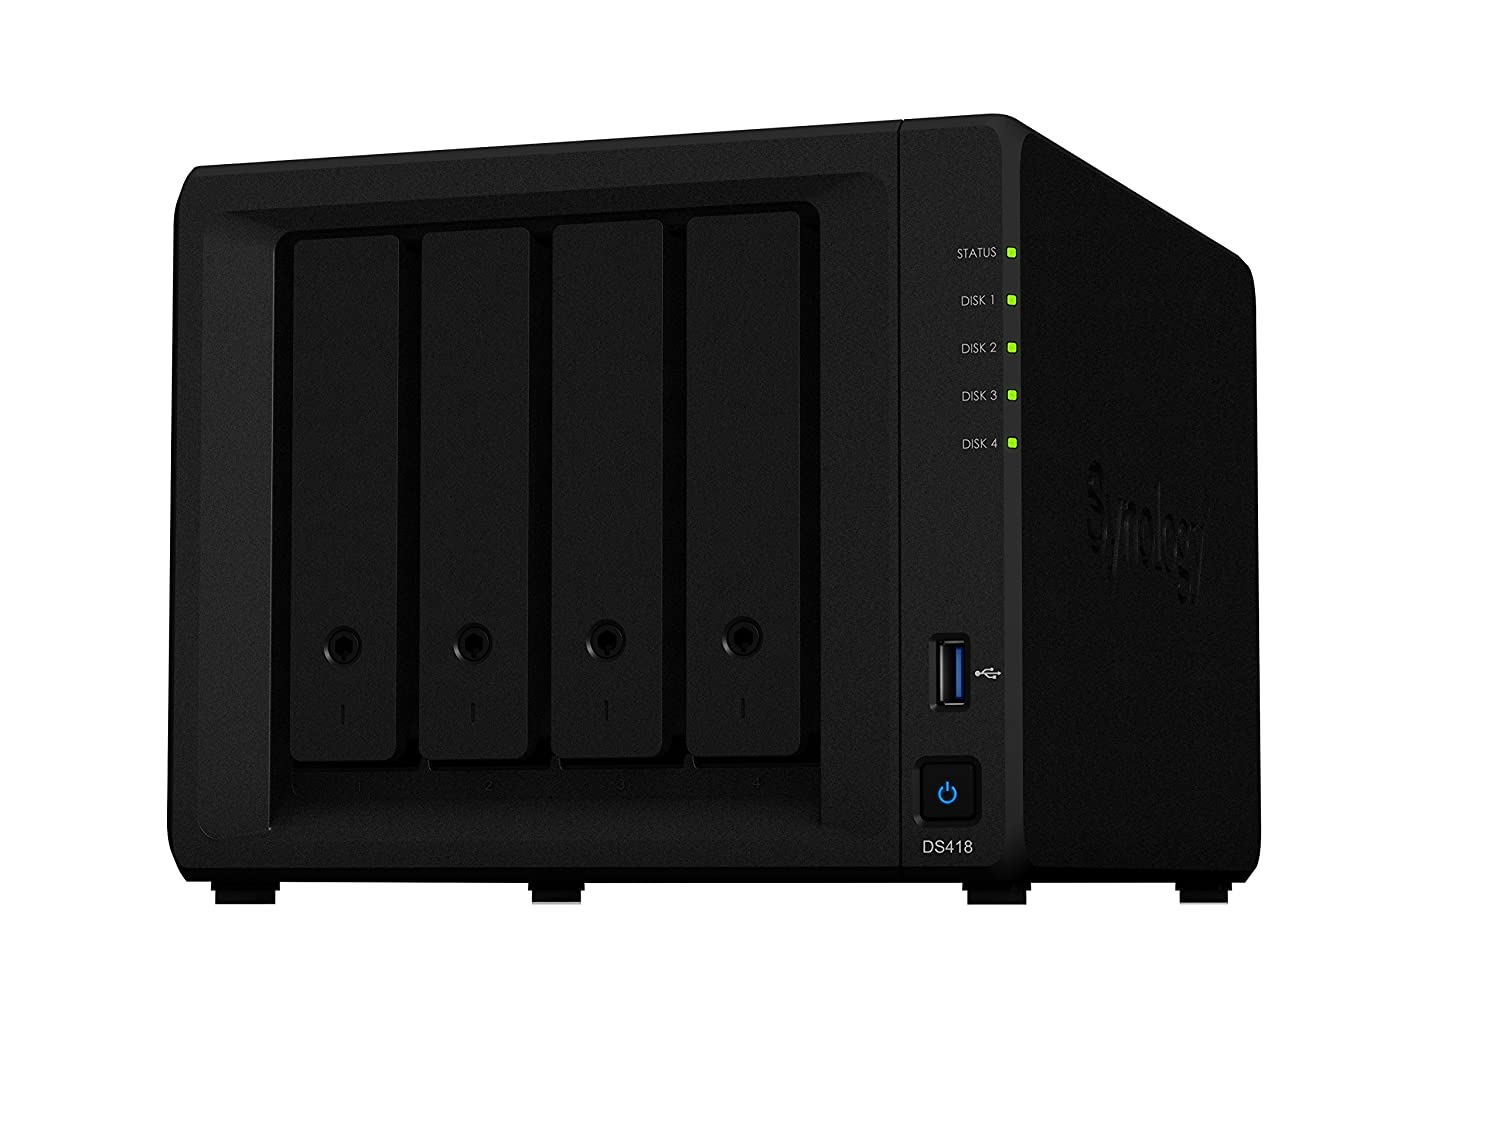 Synology DiskStation DS418 - Unidad Raid (4 TB, 1000 GB, DiskStation Manager)